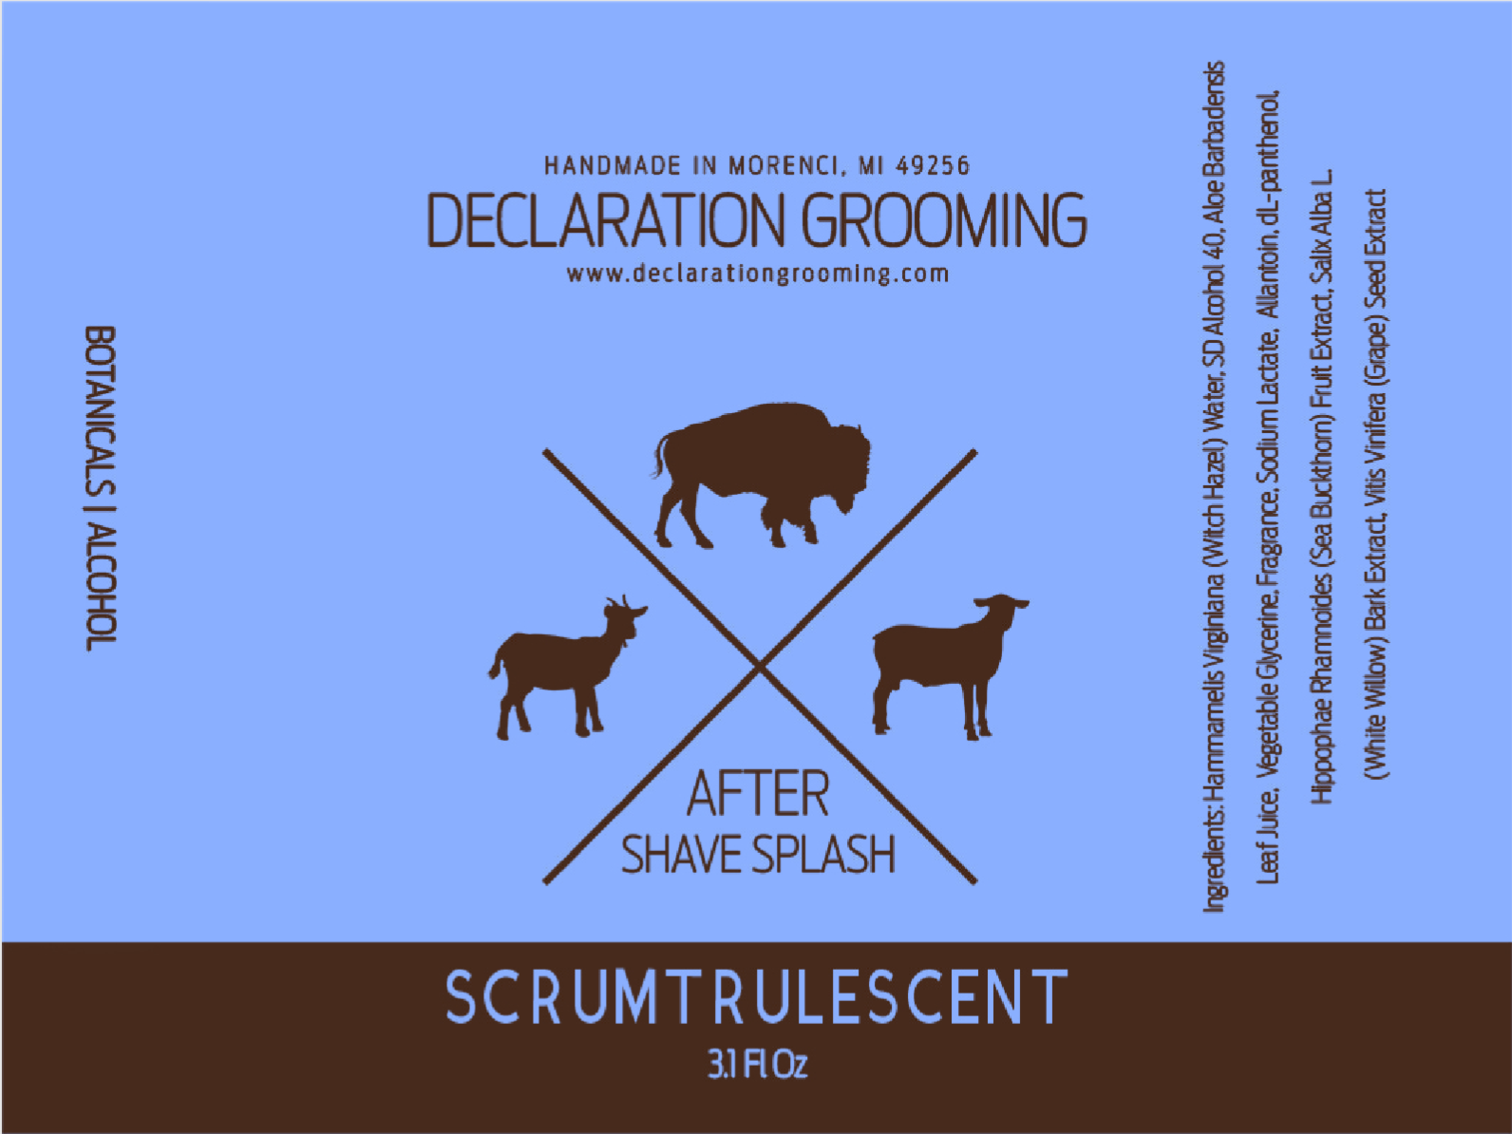 Declaration Grooming - Declaration Grooming - Scrumtrulescent - Aftershave image